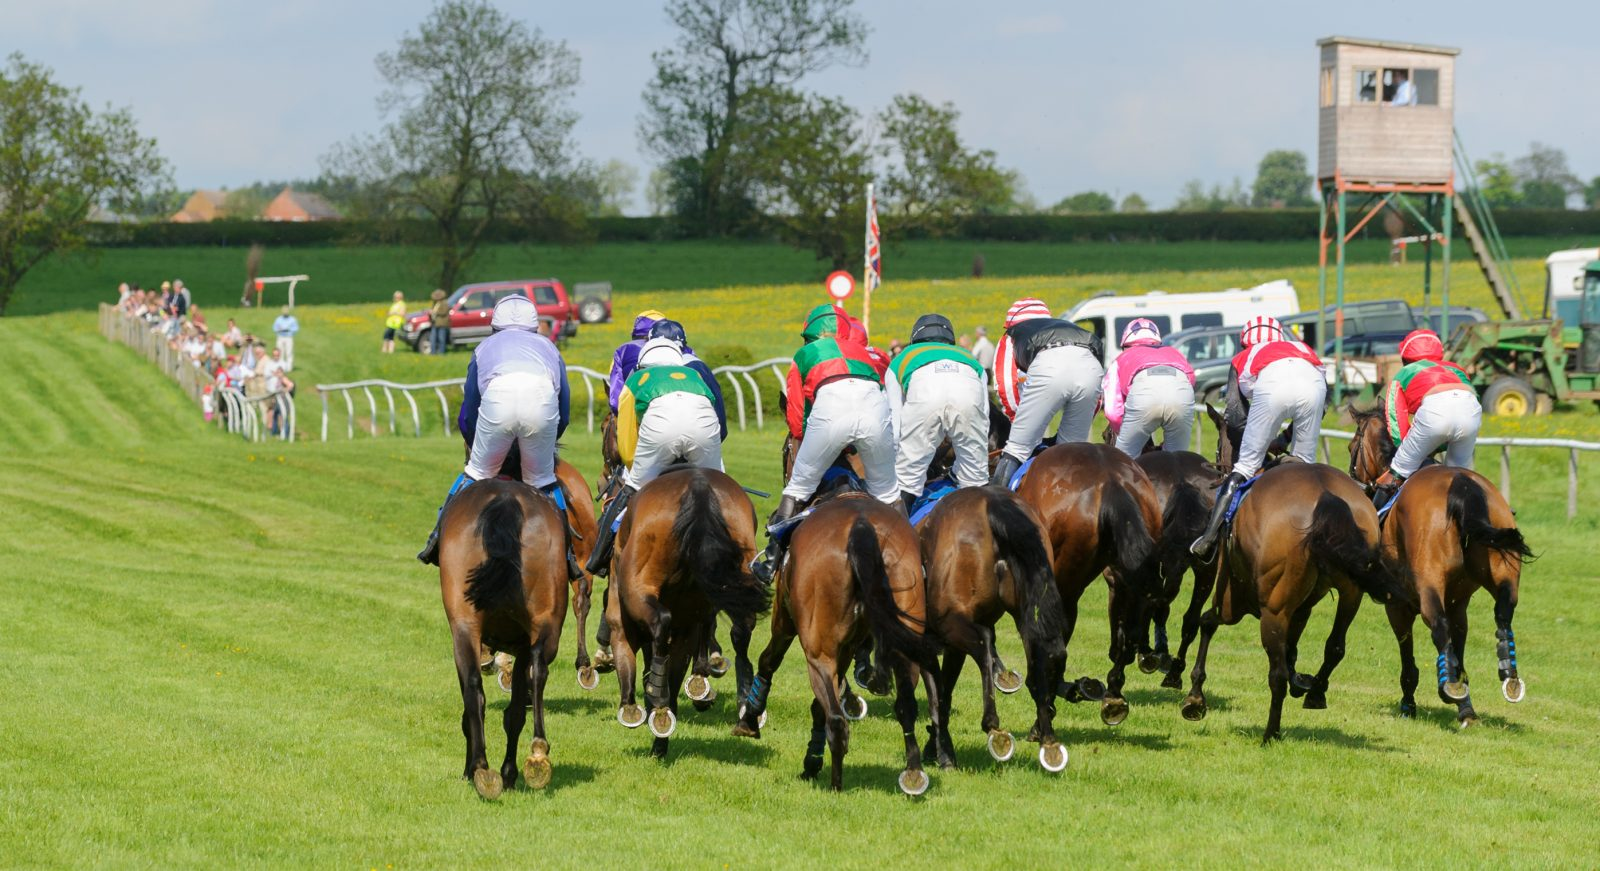 Jockeys to benefit from workshops with professionals